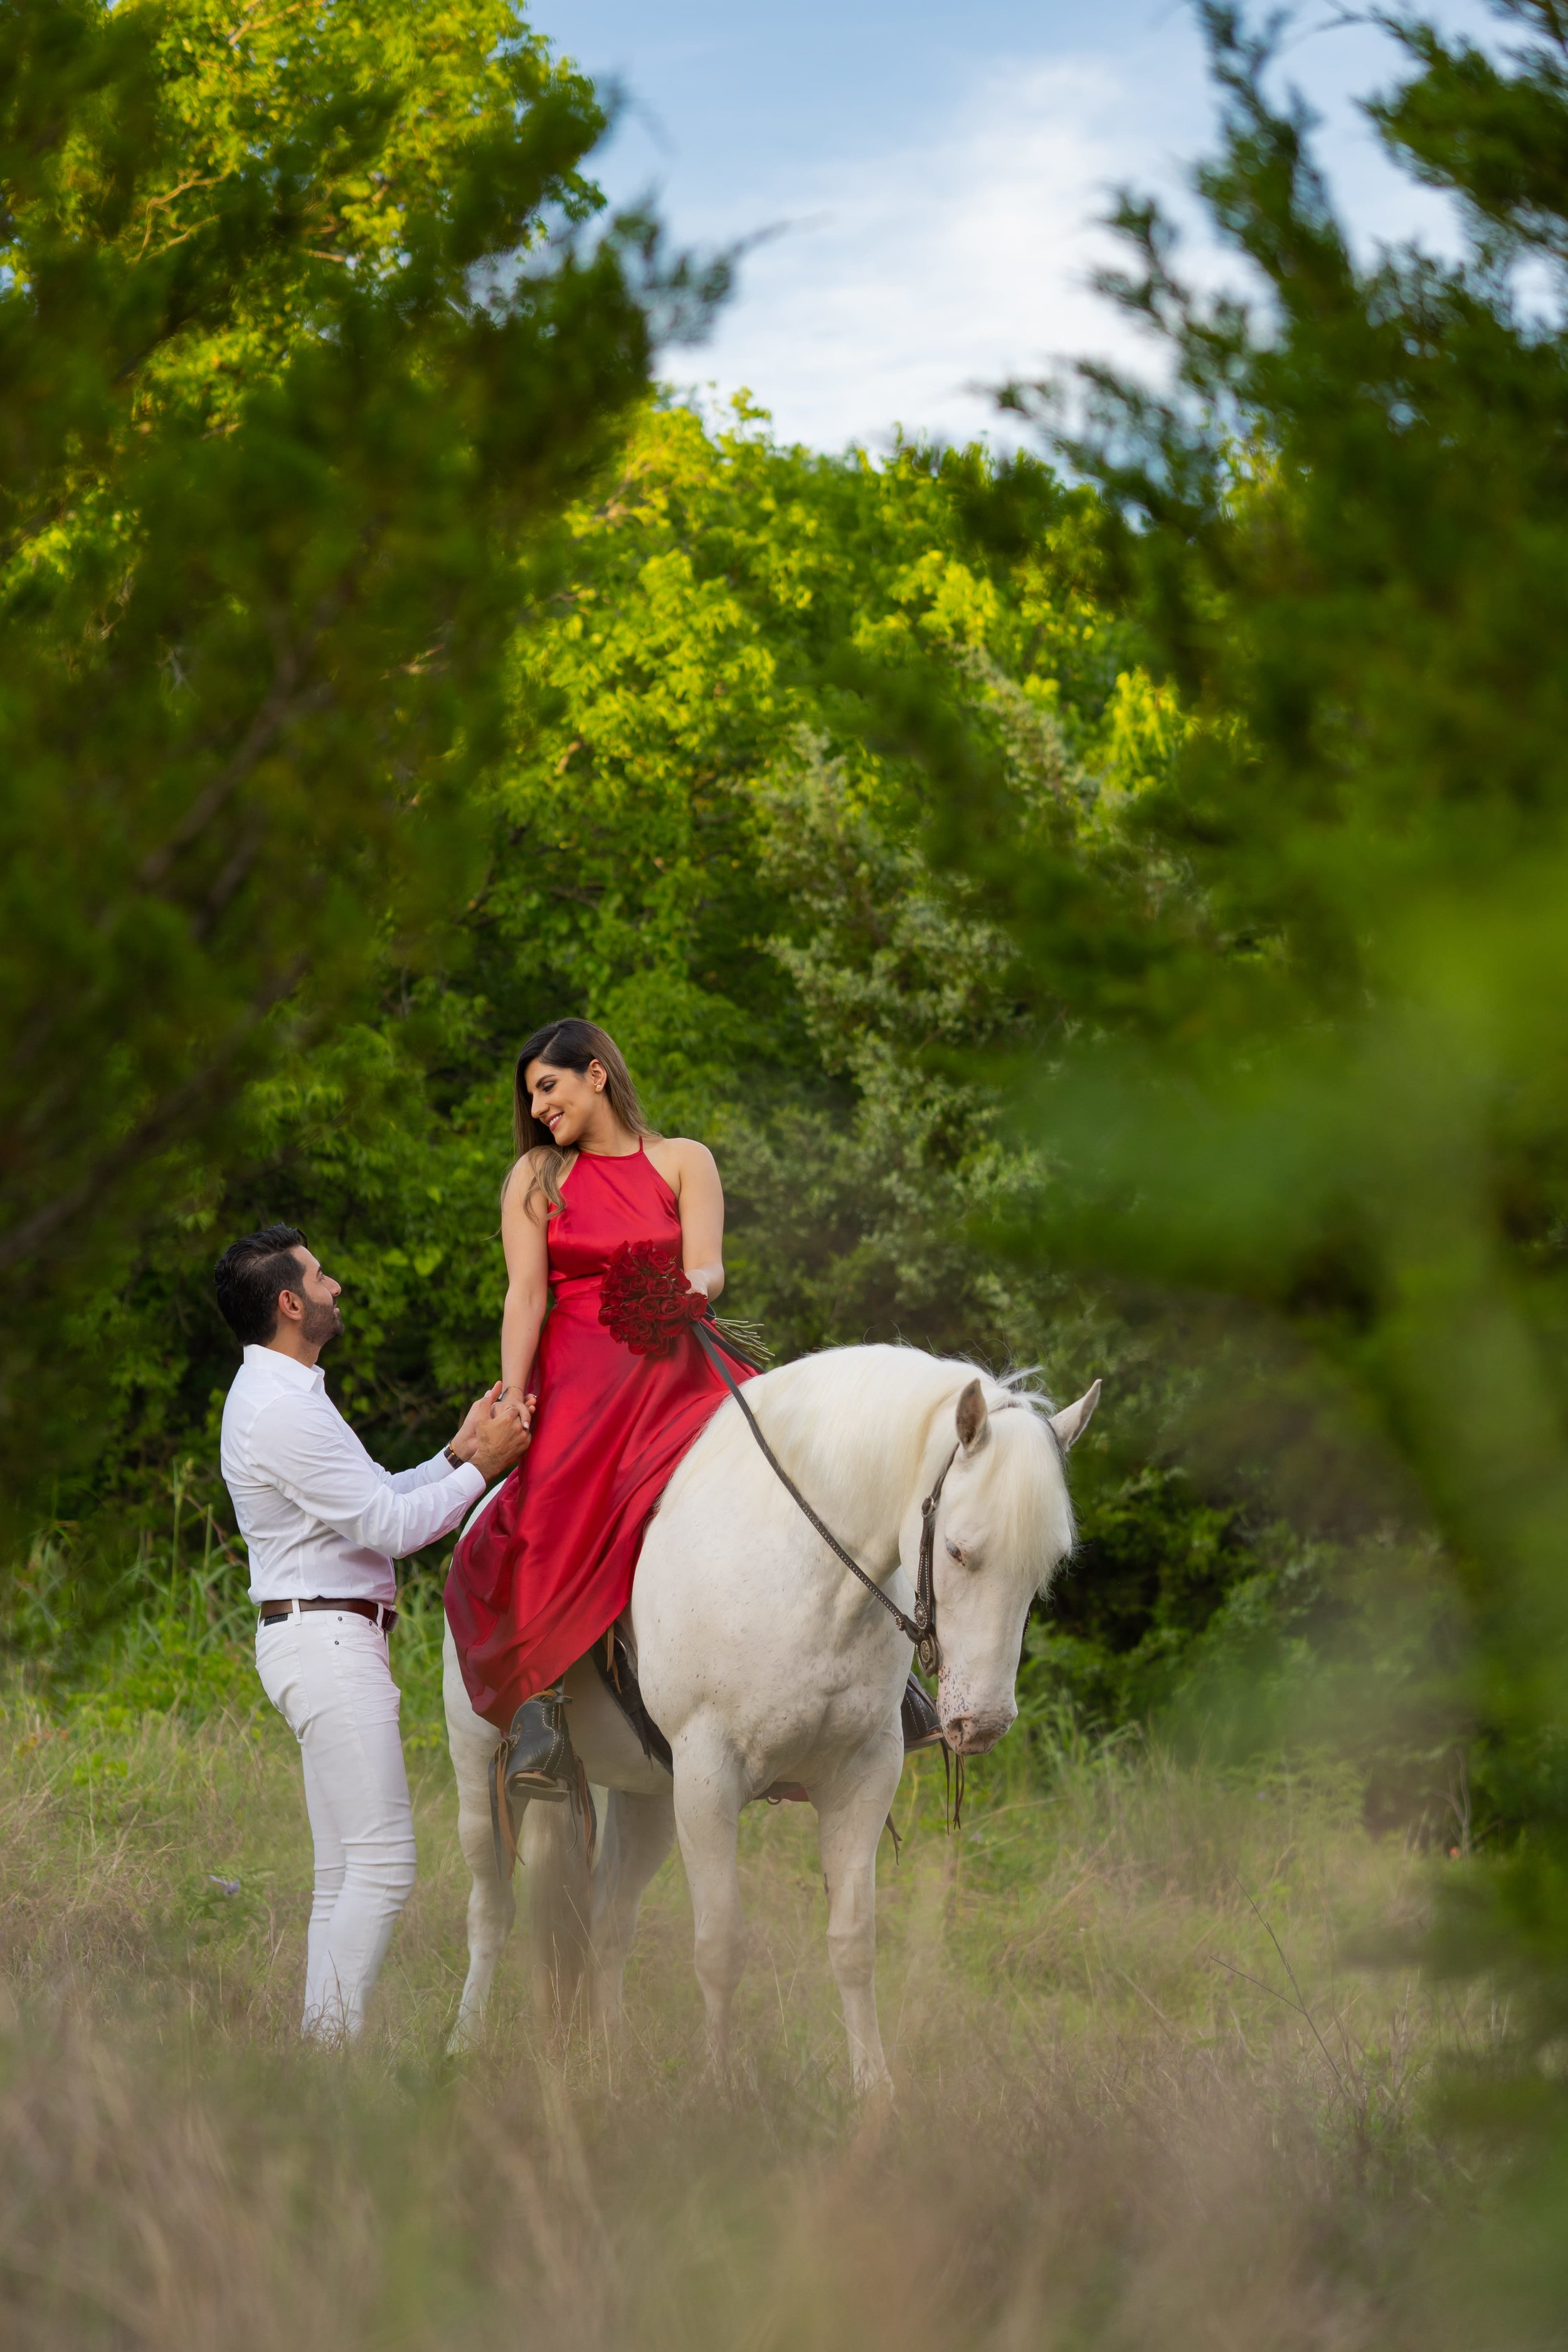 Engagement Photography Services Lucas, TX - Engaged couple holding hands while horse back riding.